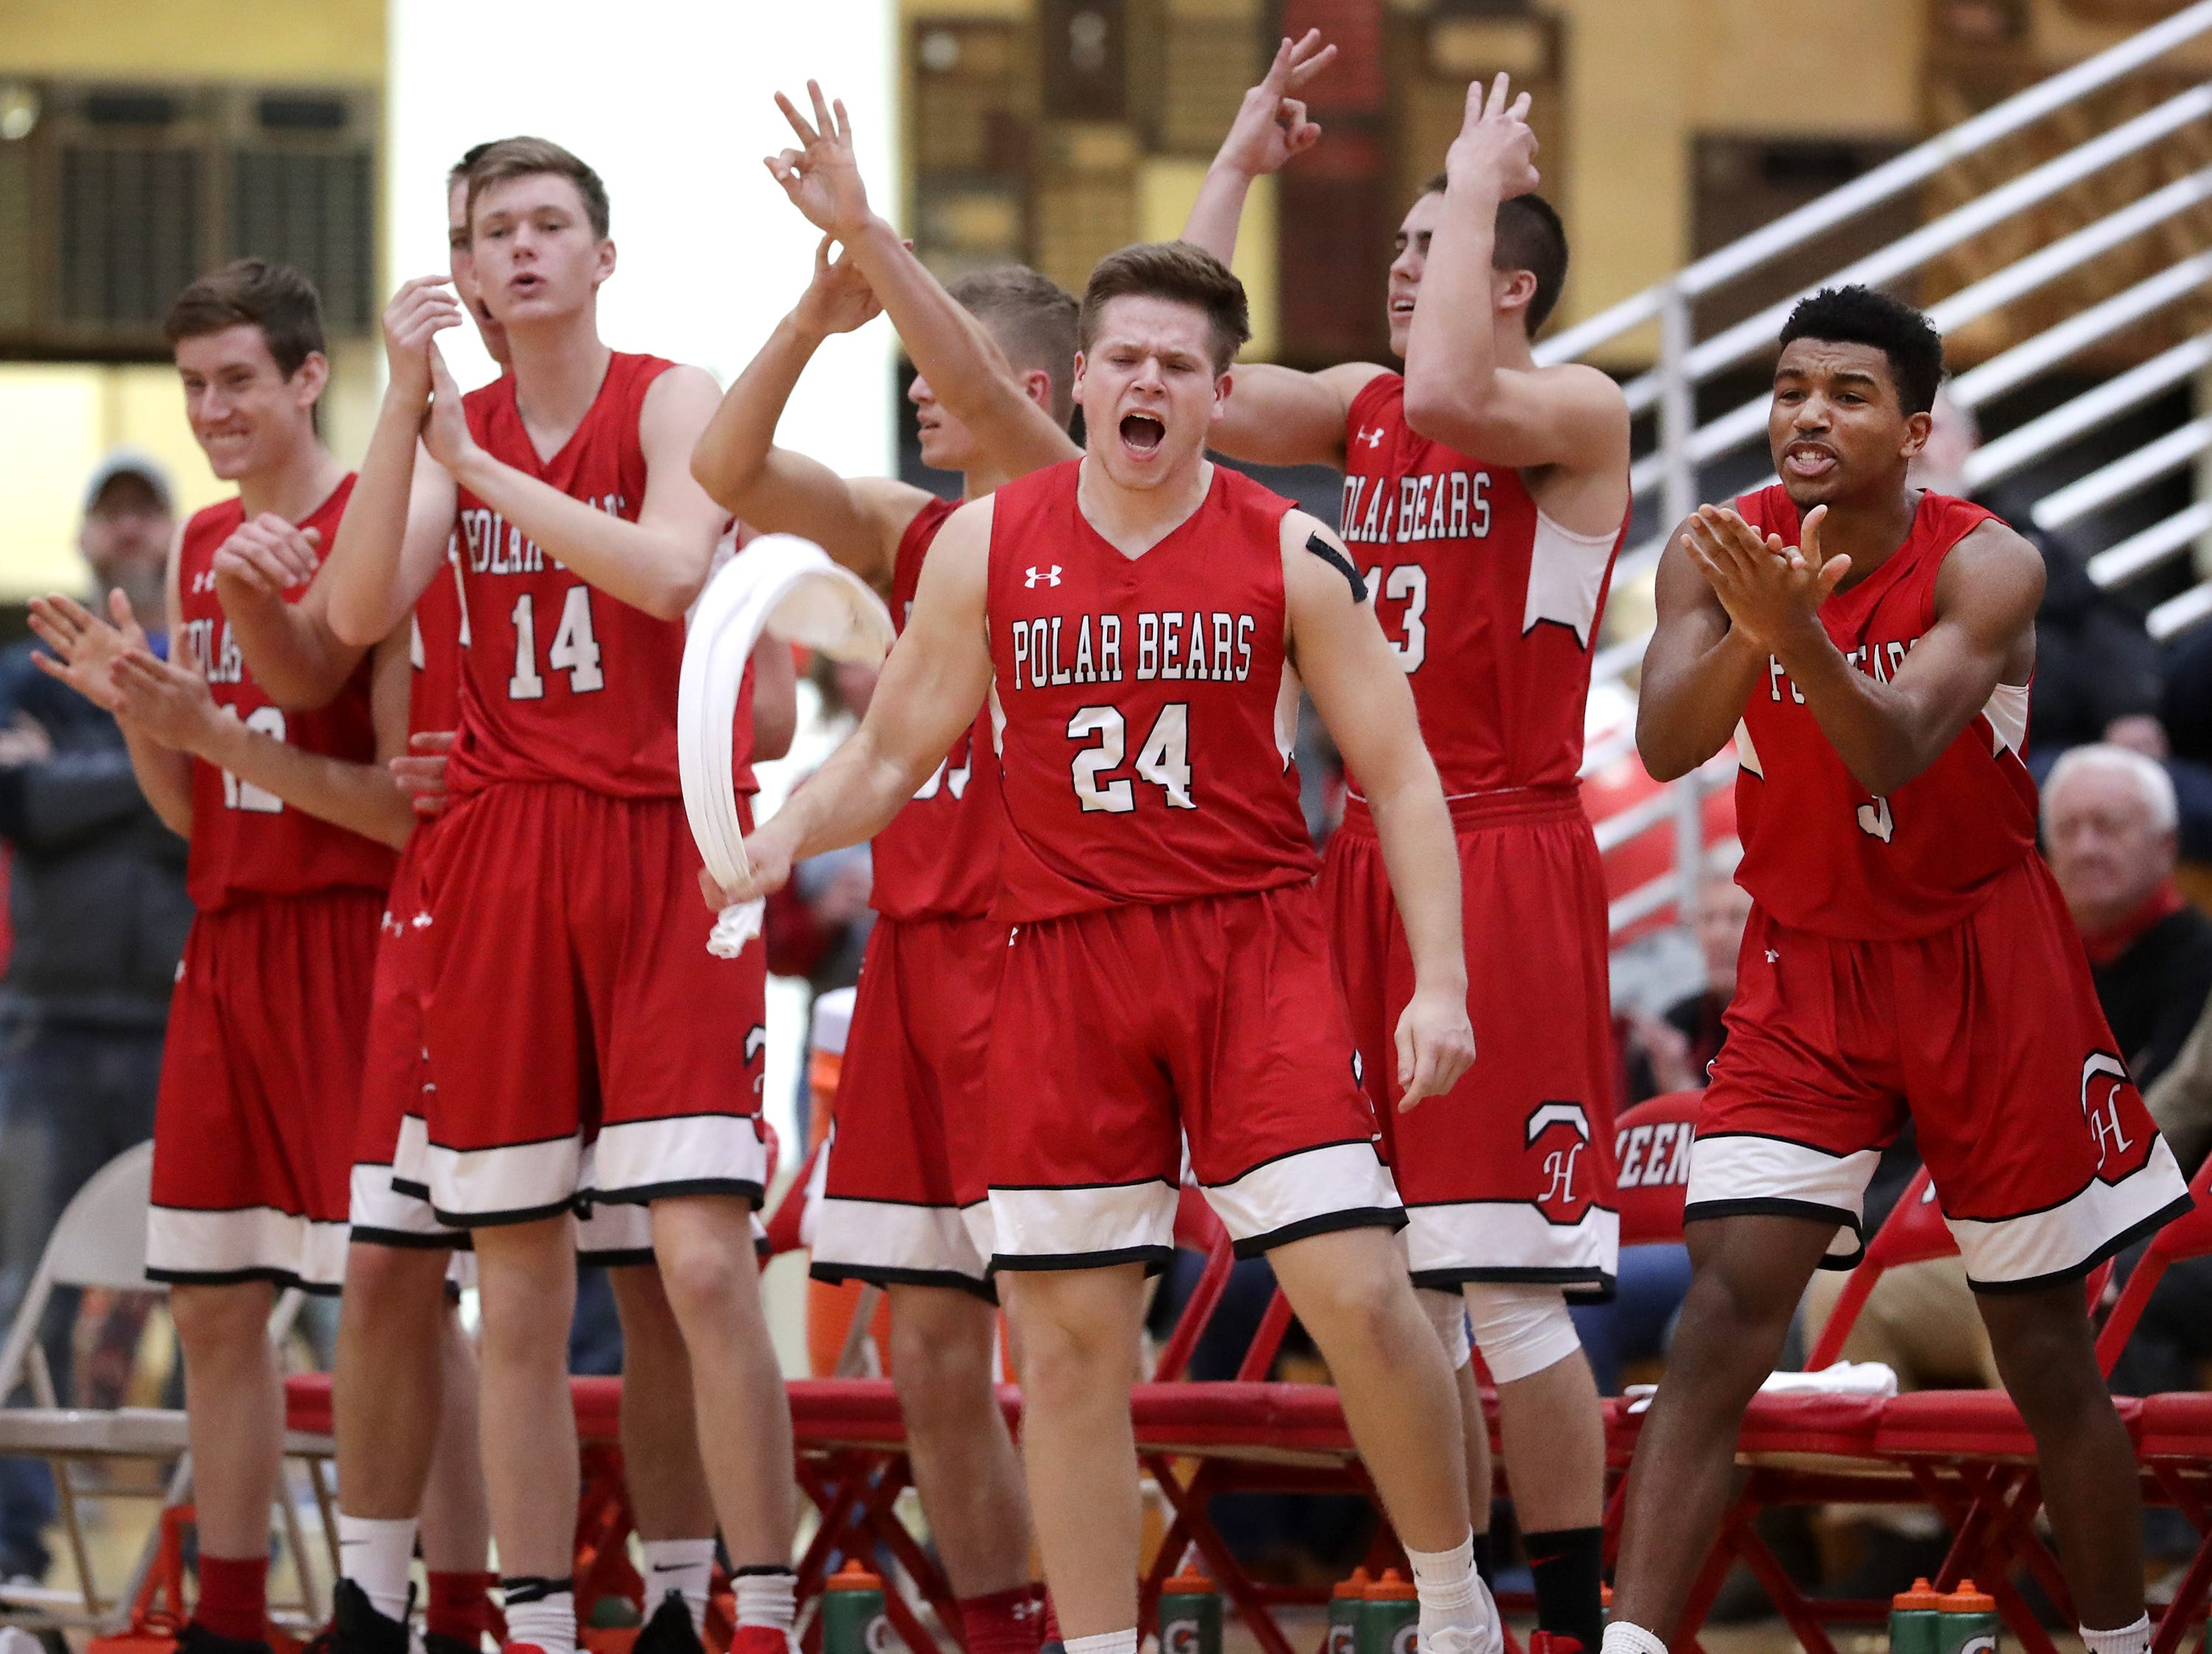 Neenah High School against Hortonville High School during their Fox Valley Association boys basketball game on Friday, November 30, 2018, in Neenah, Wis. Neenah defeated Hortonville 71 to 67 in overtime.Wm. Glasheen/USA TODAY NETWORK-Wisconsin.